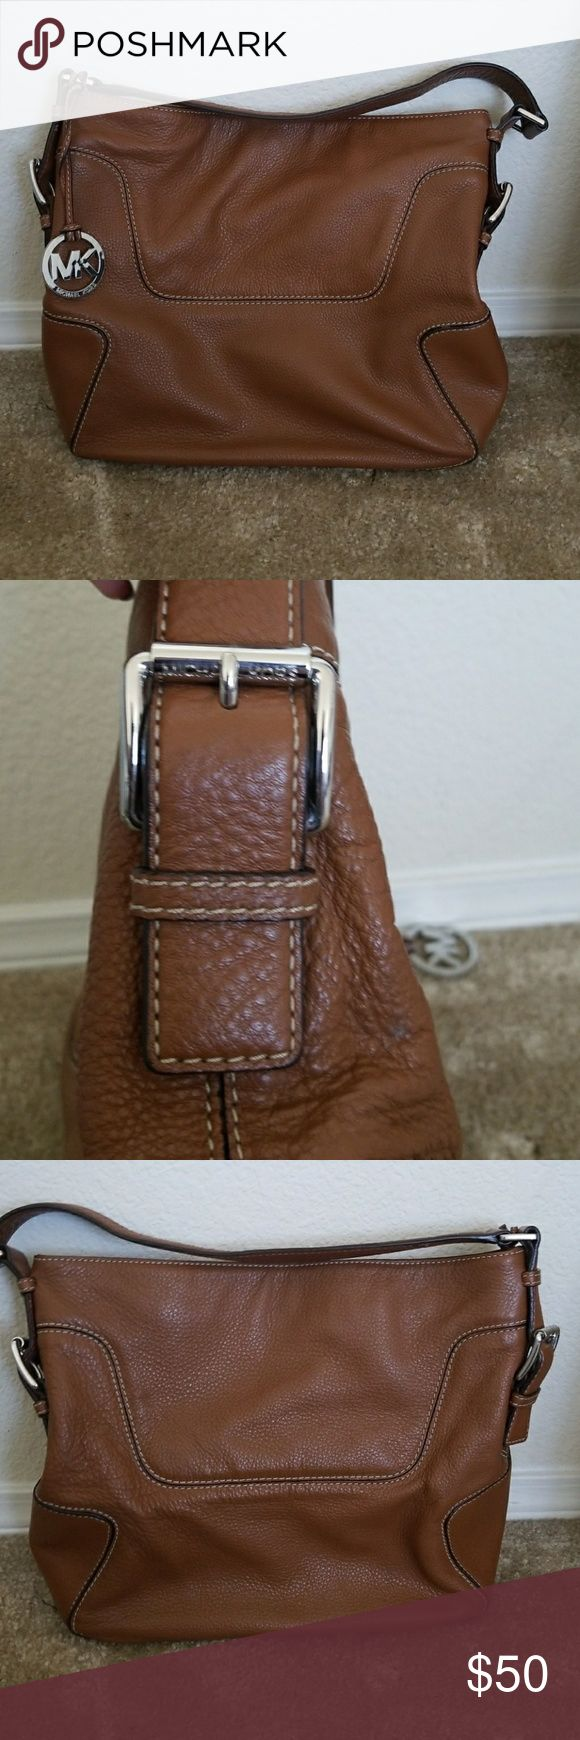 """Michael Kors Luggage Shoulder Bag Michael Kors shoulder bag in luggage color. Barely used. 10"""" drop. Purchased from Michael Kors factory store. One large zippered pocket on interior and 4 smaller pockets. MICHAEL Michael Kors Bags Shoulder Bags"""